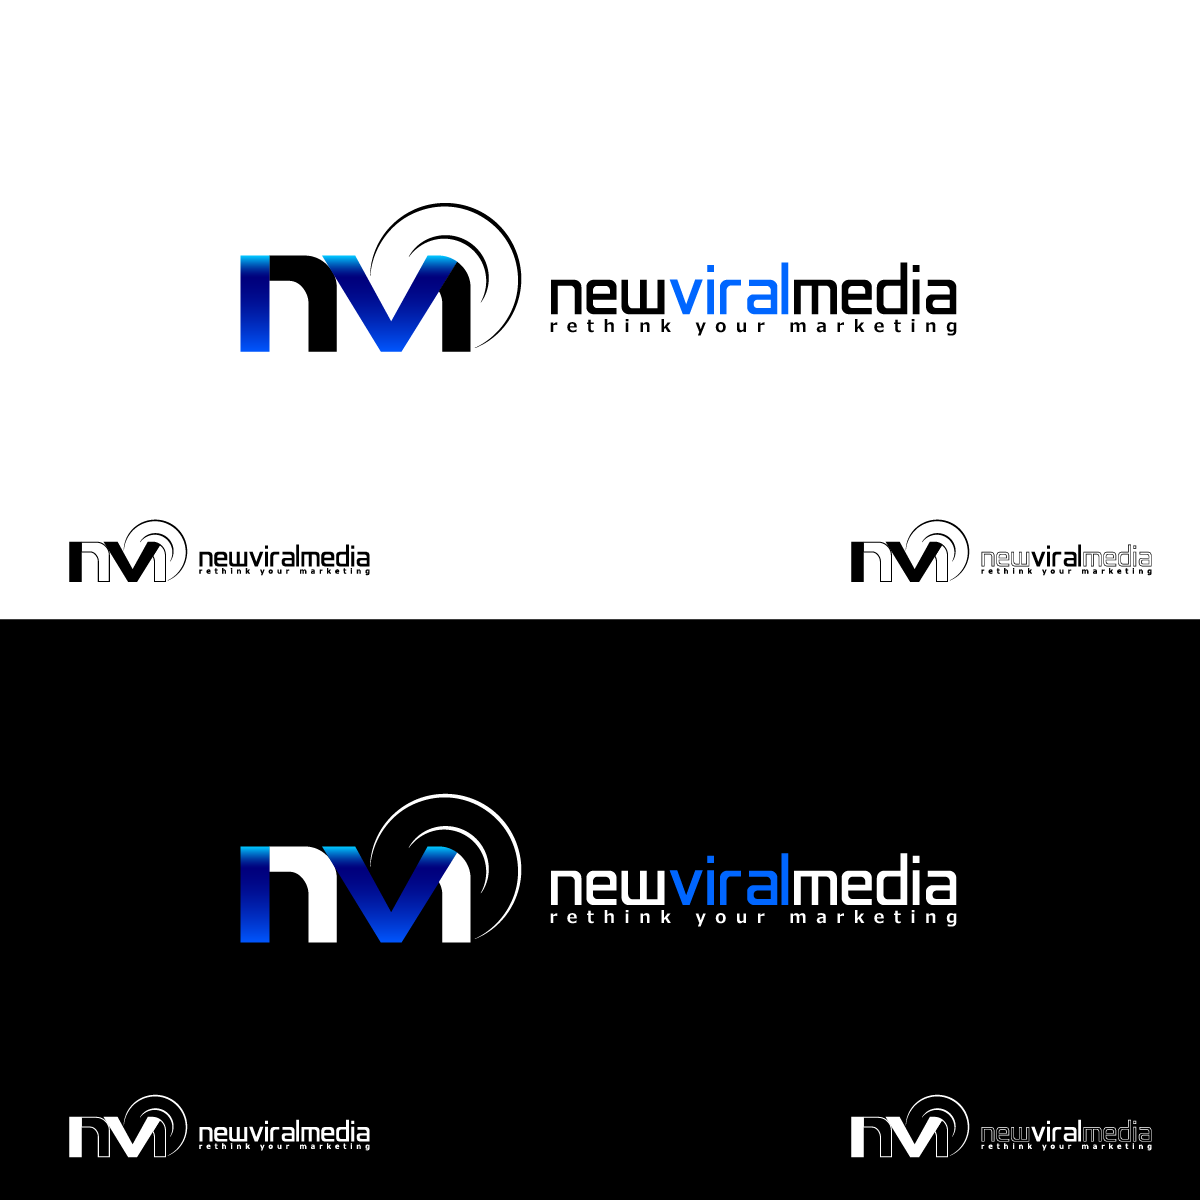 Logo Design by zesthar - Entry No. 61 in the Logo Design Contest New Viral Media Logo.